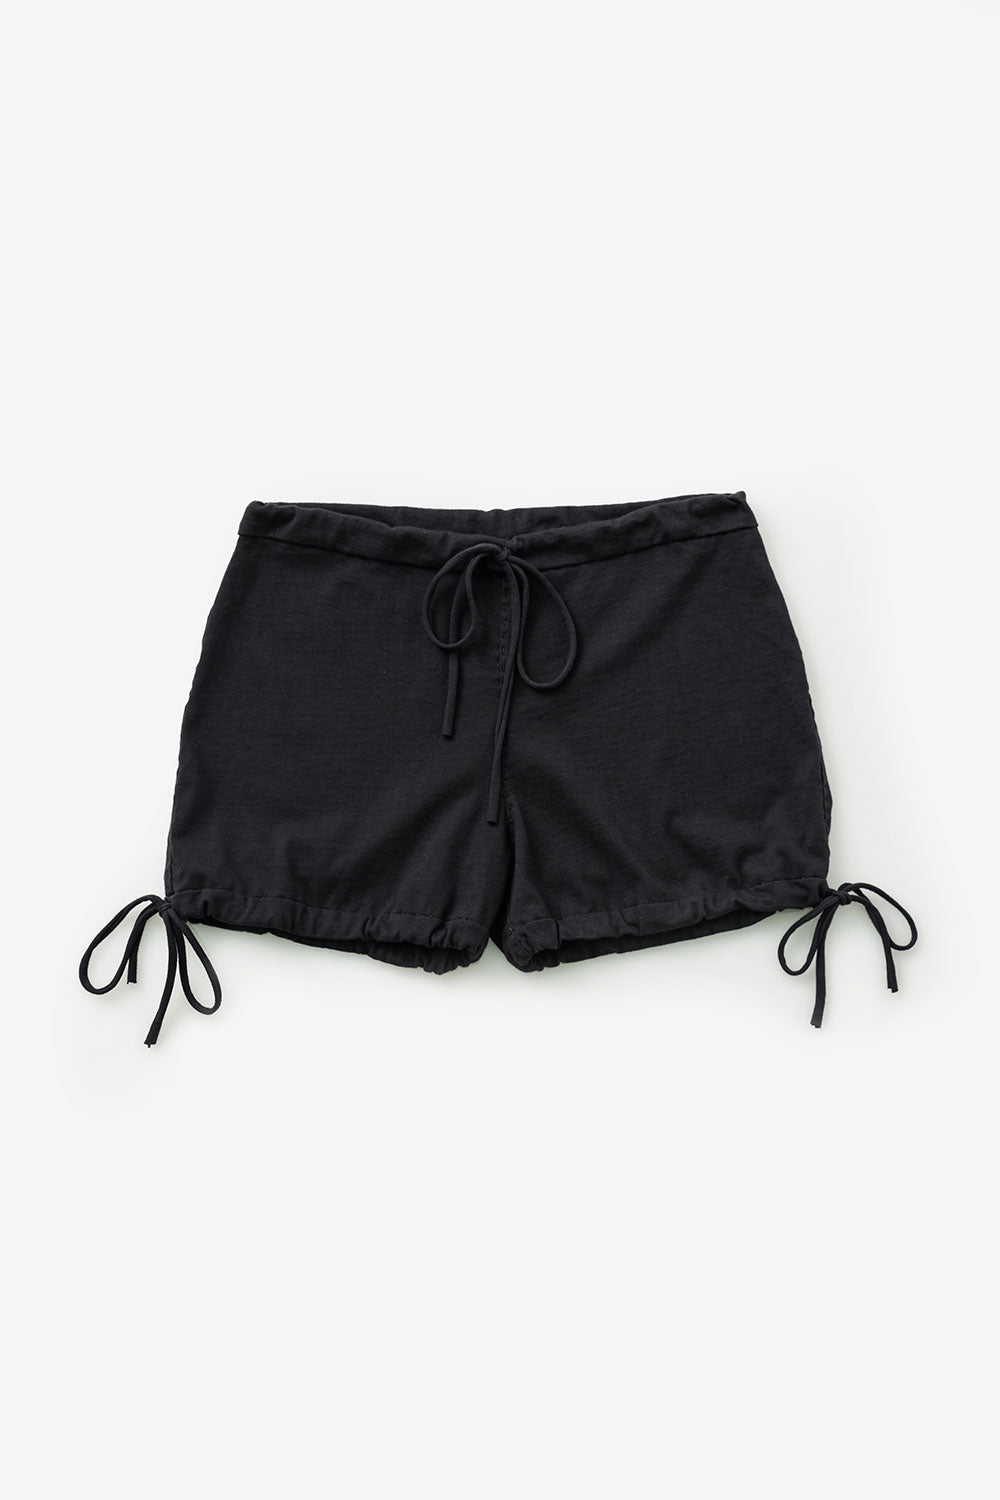 The School of Making The Drawstring Pant Pattern Hand-Sewn Drawstring Shorts for Women